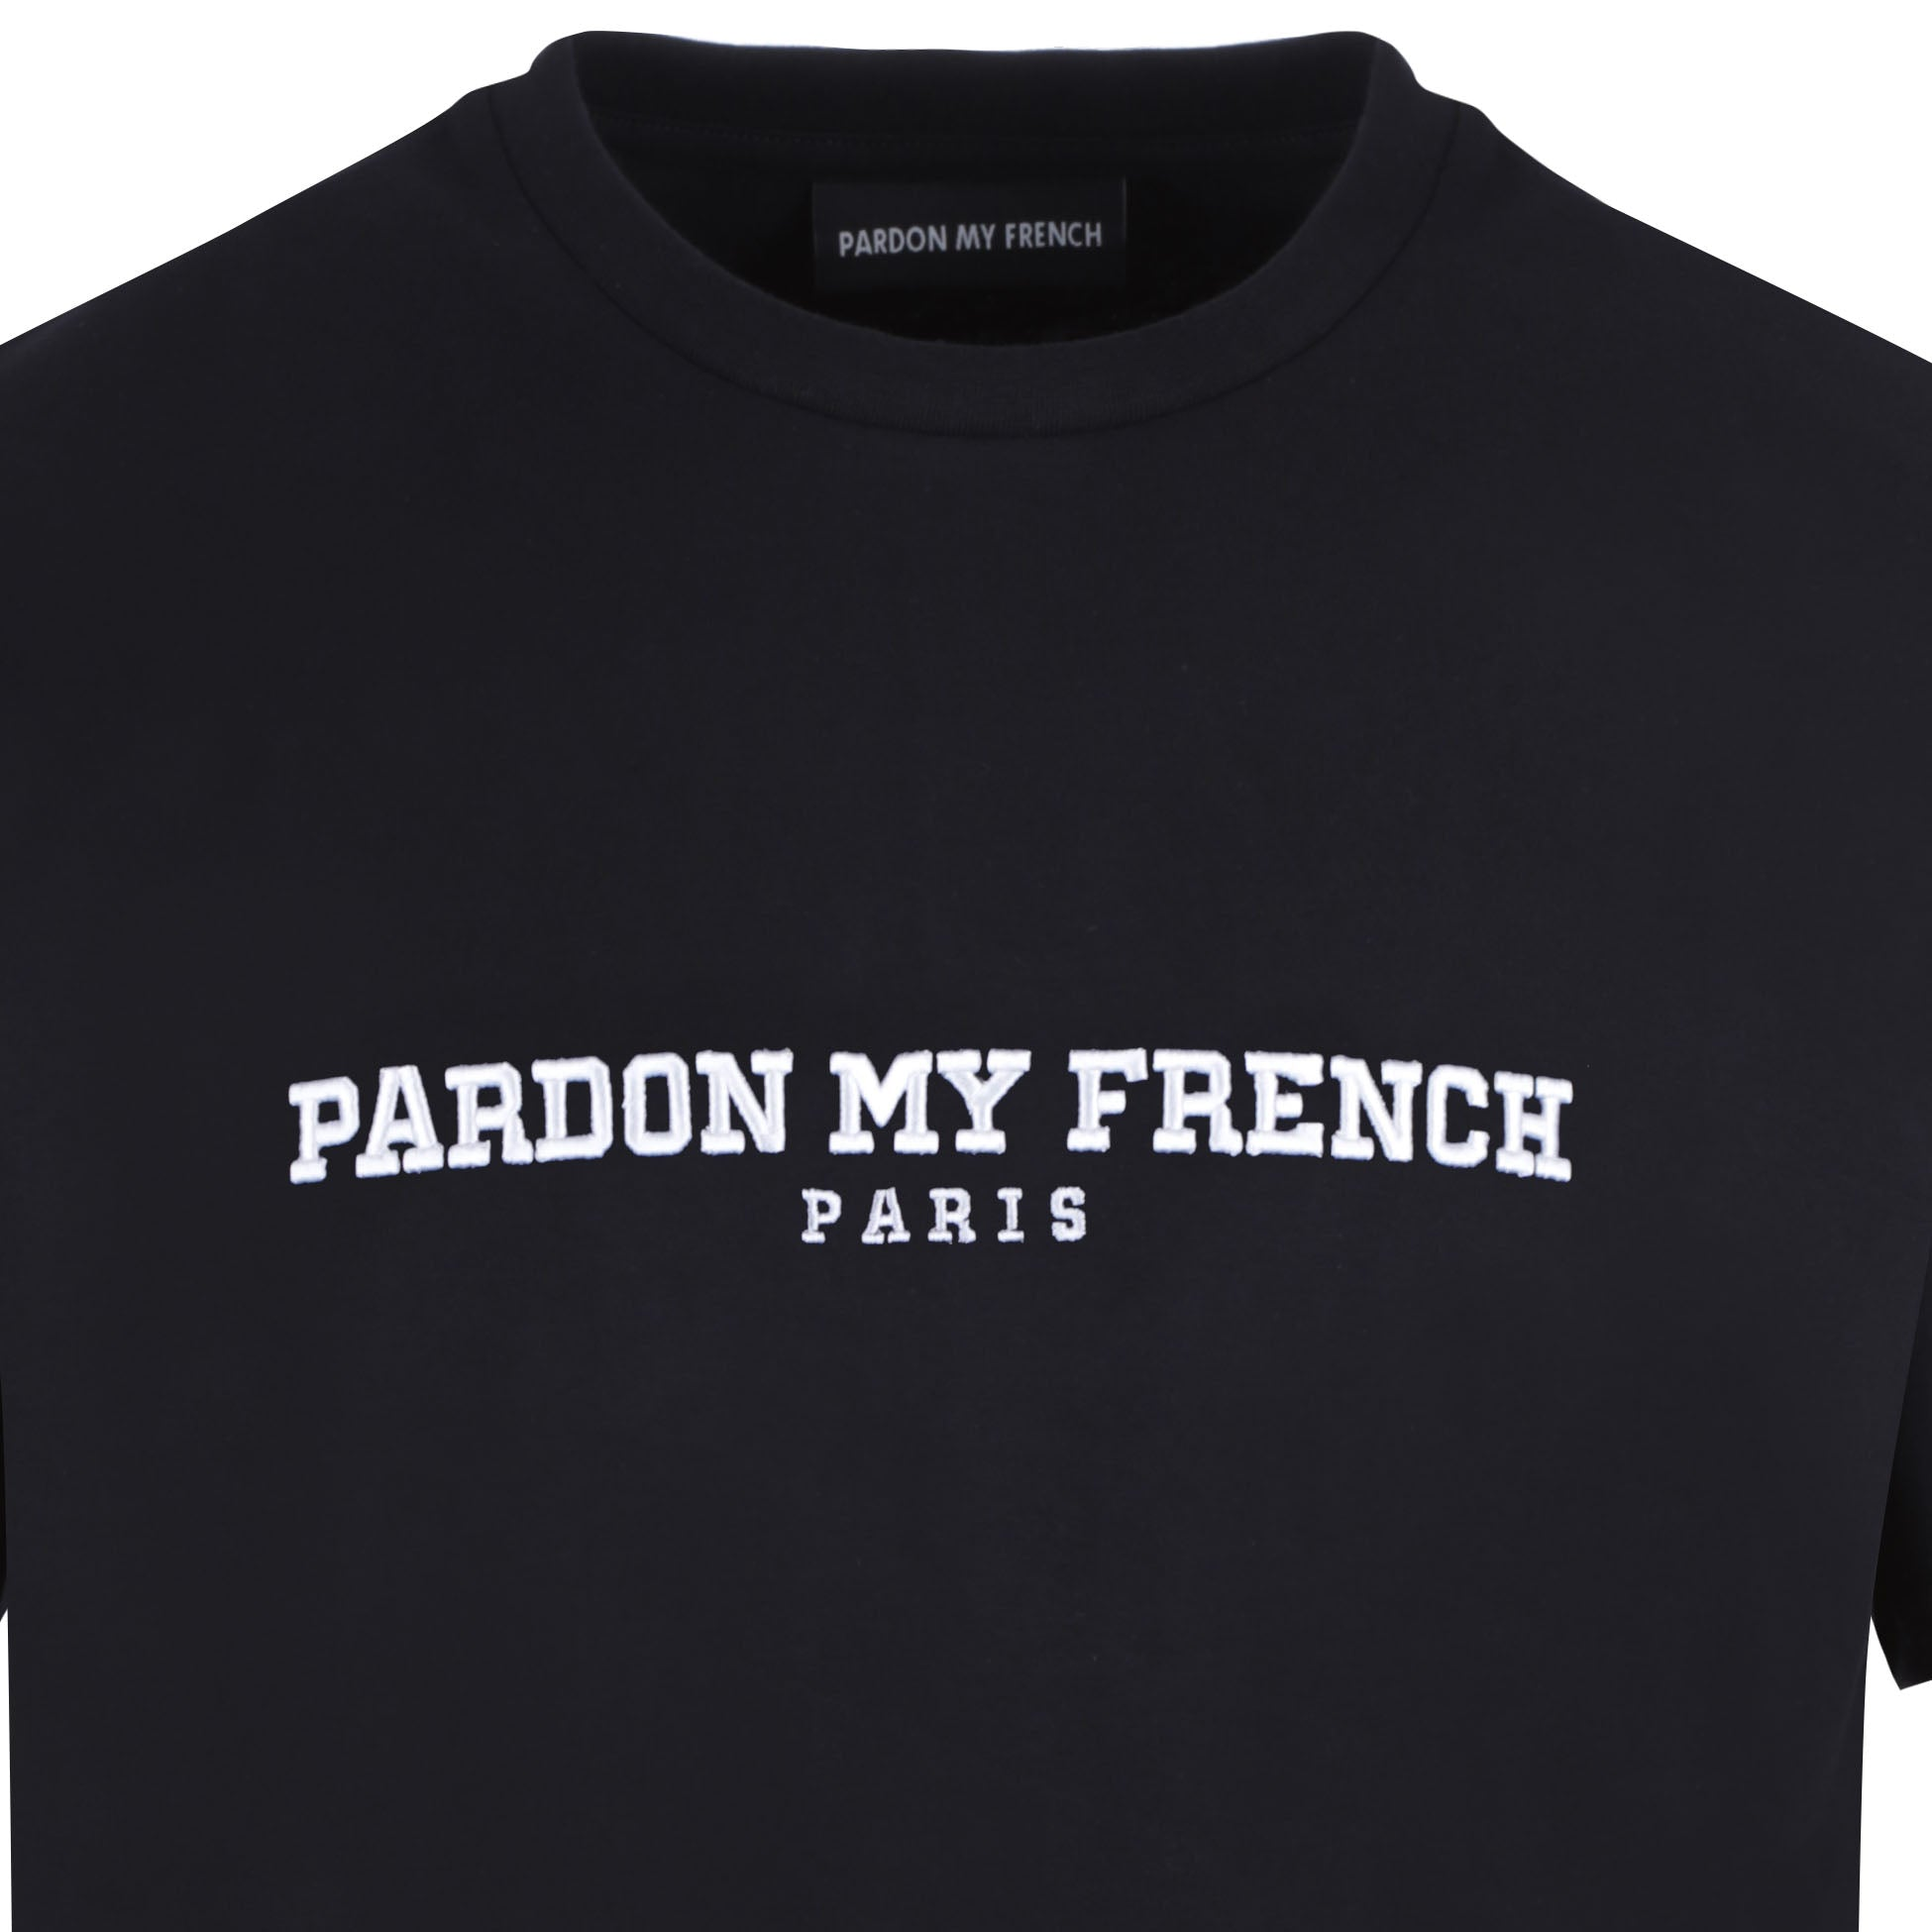 TSHIRT PARIS EDITION BLACK WITH WHITE EMBROIDERY